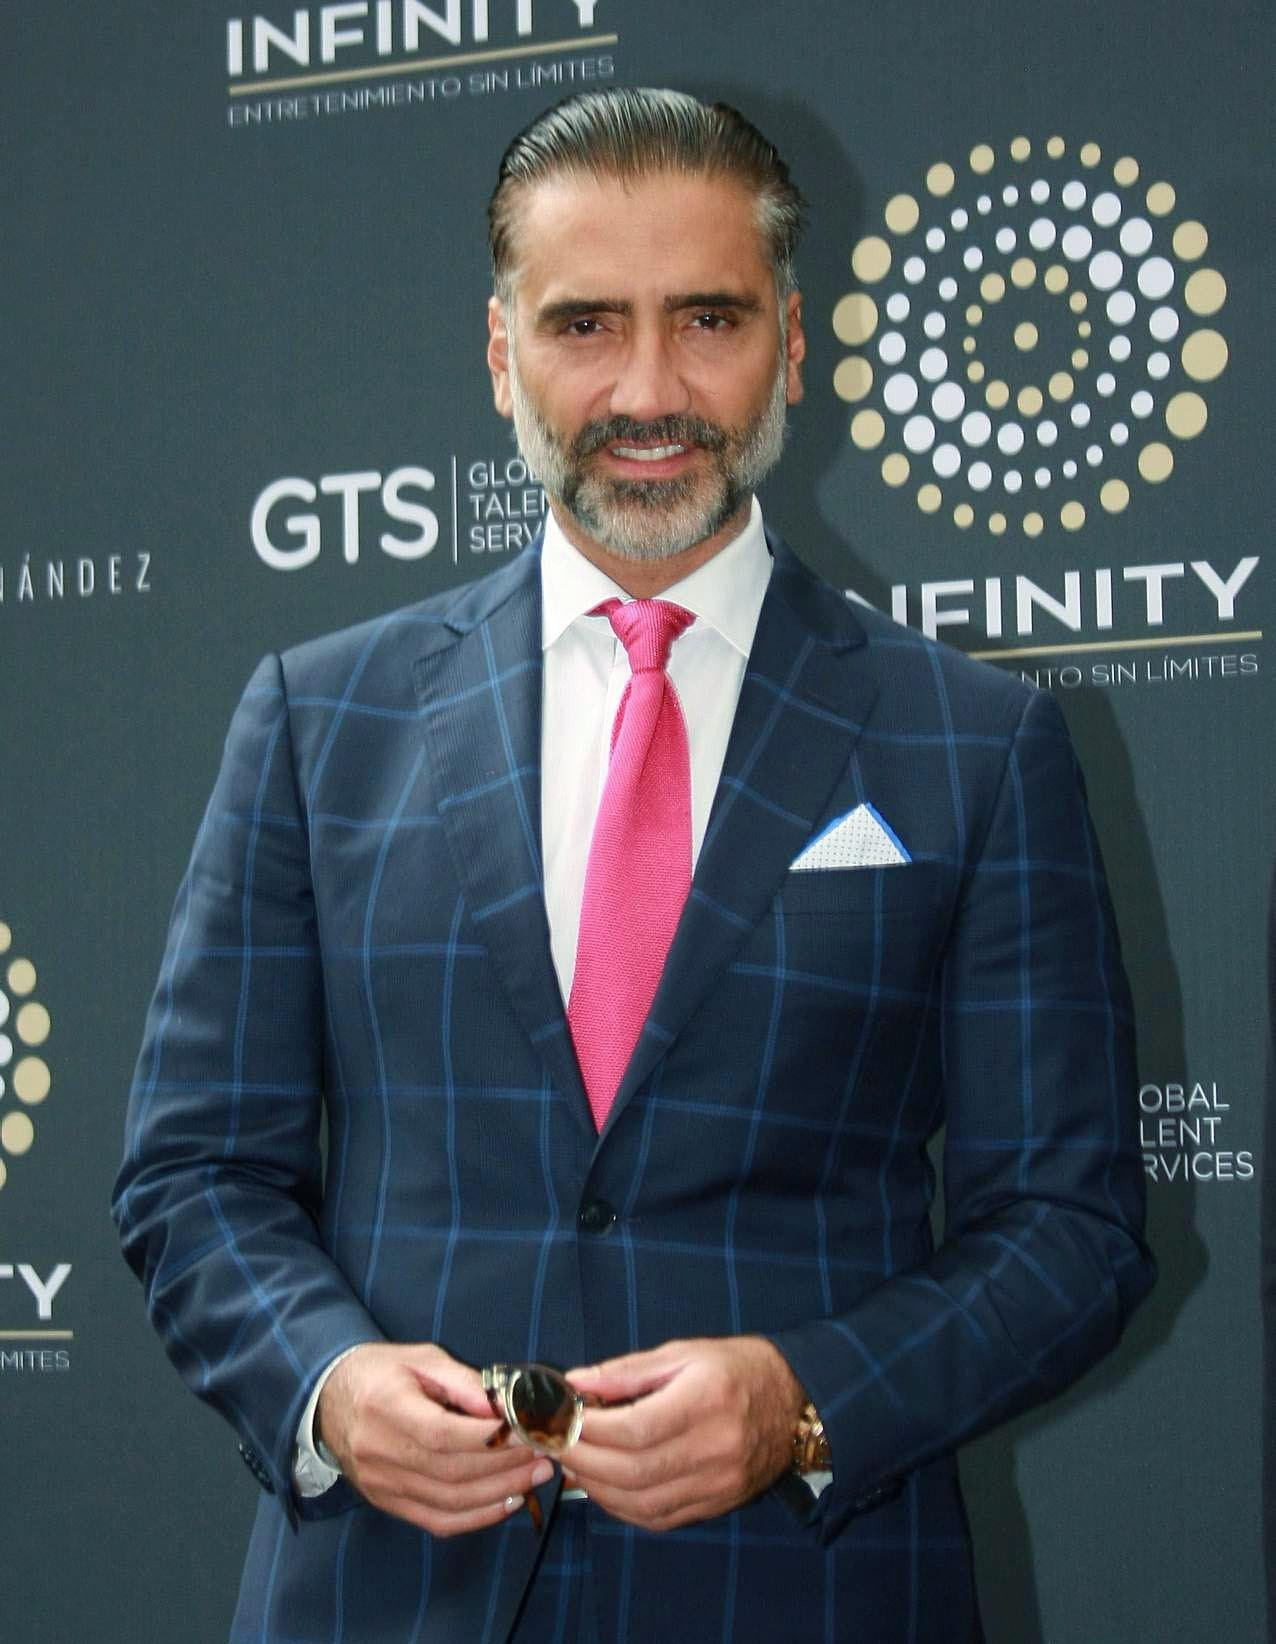 Singer Alejandro Fernandez Presents His New Agency